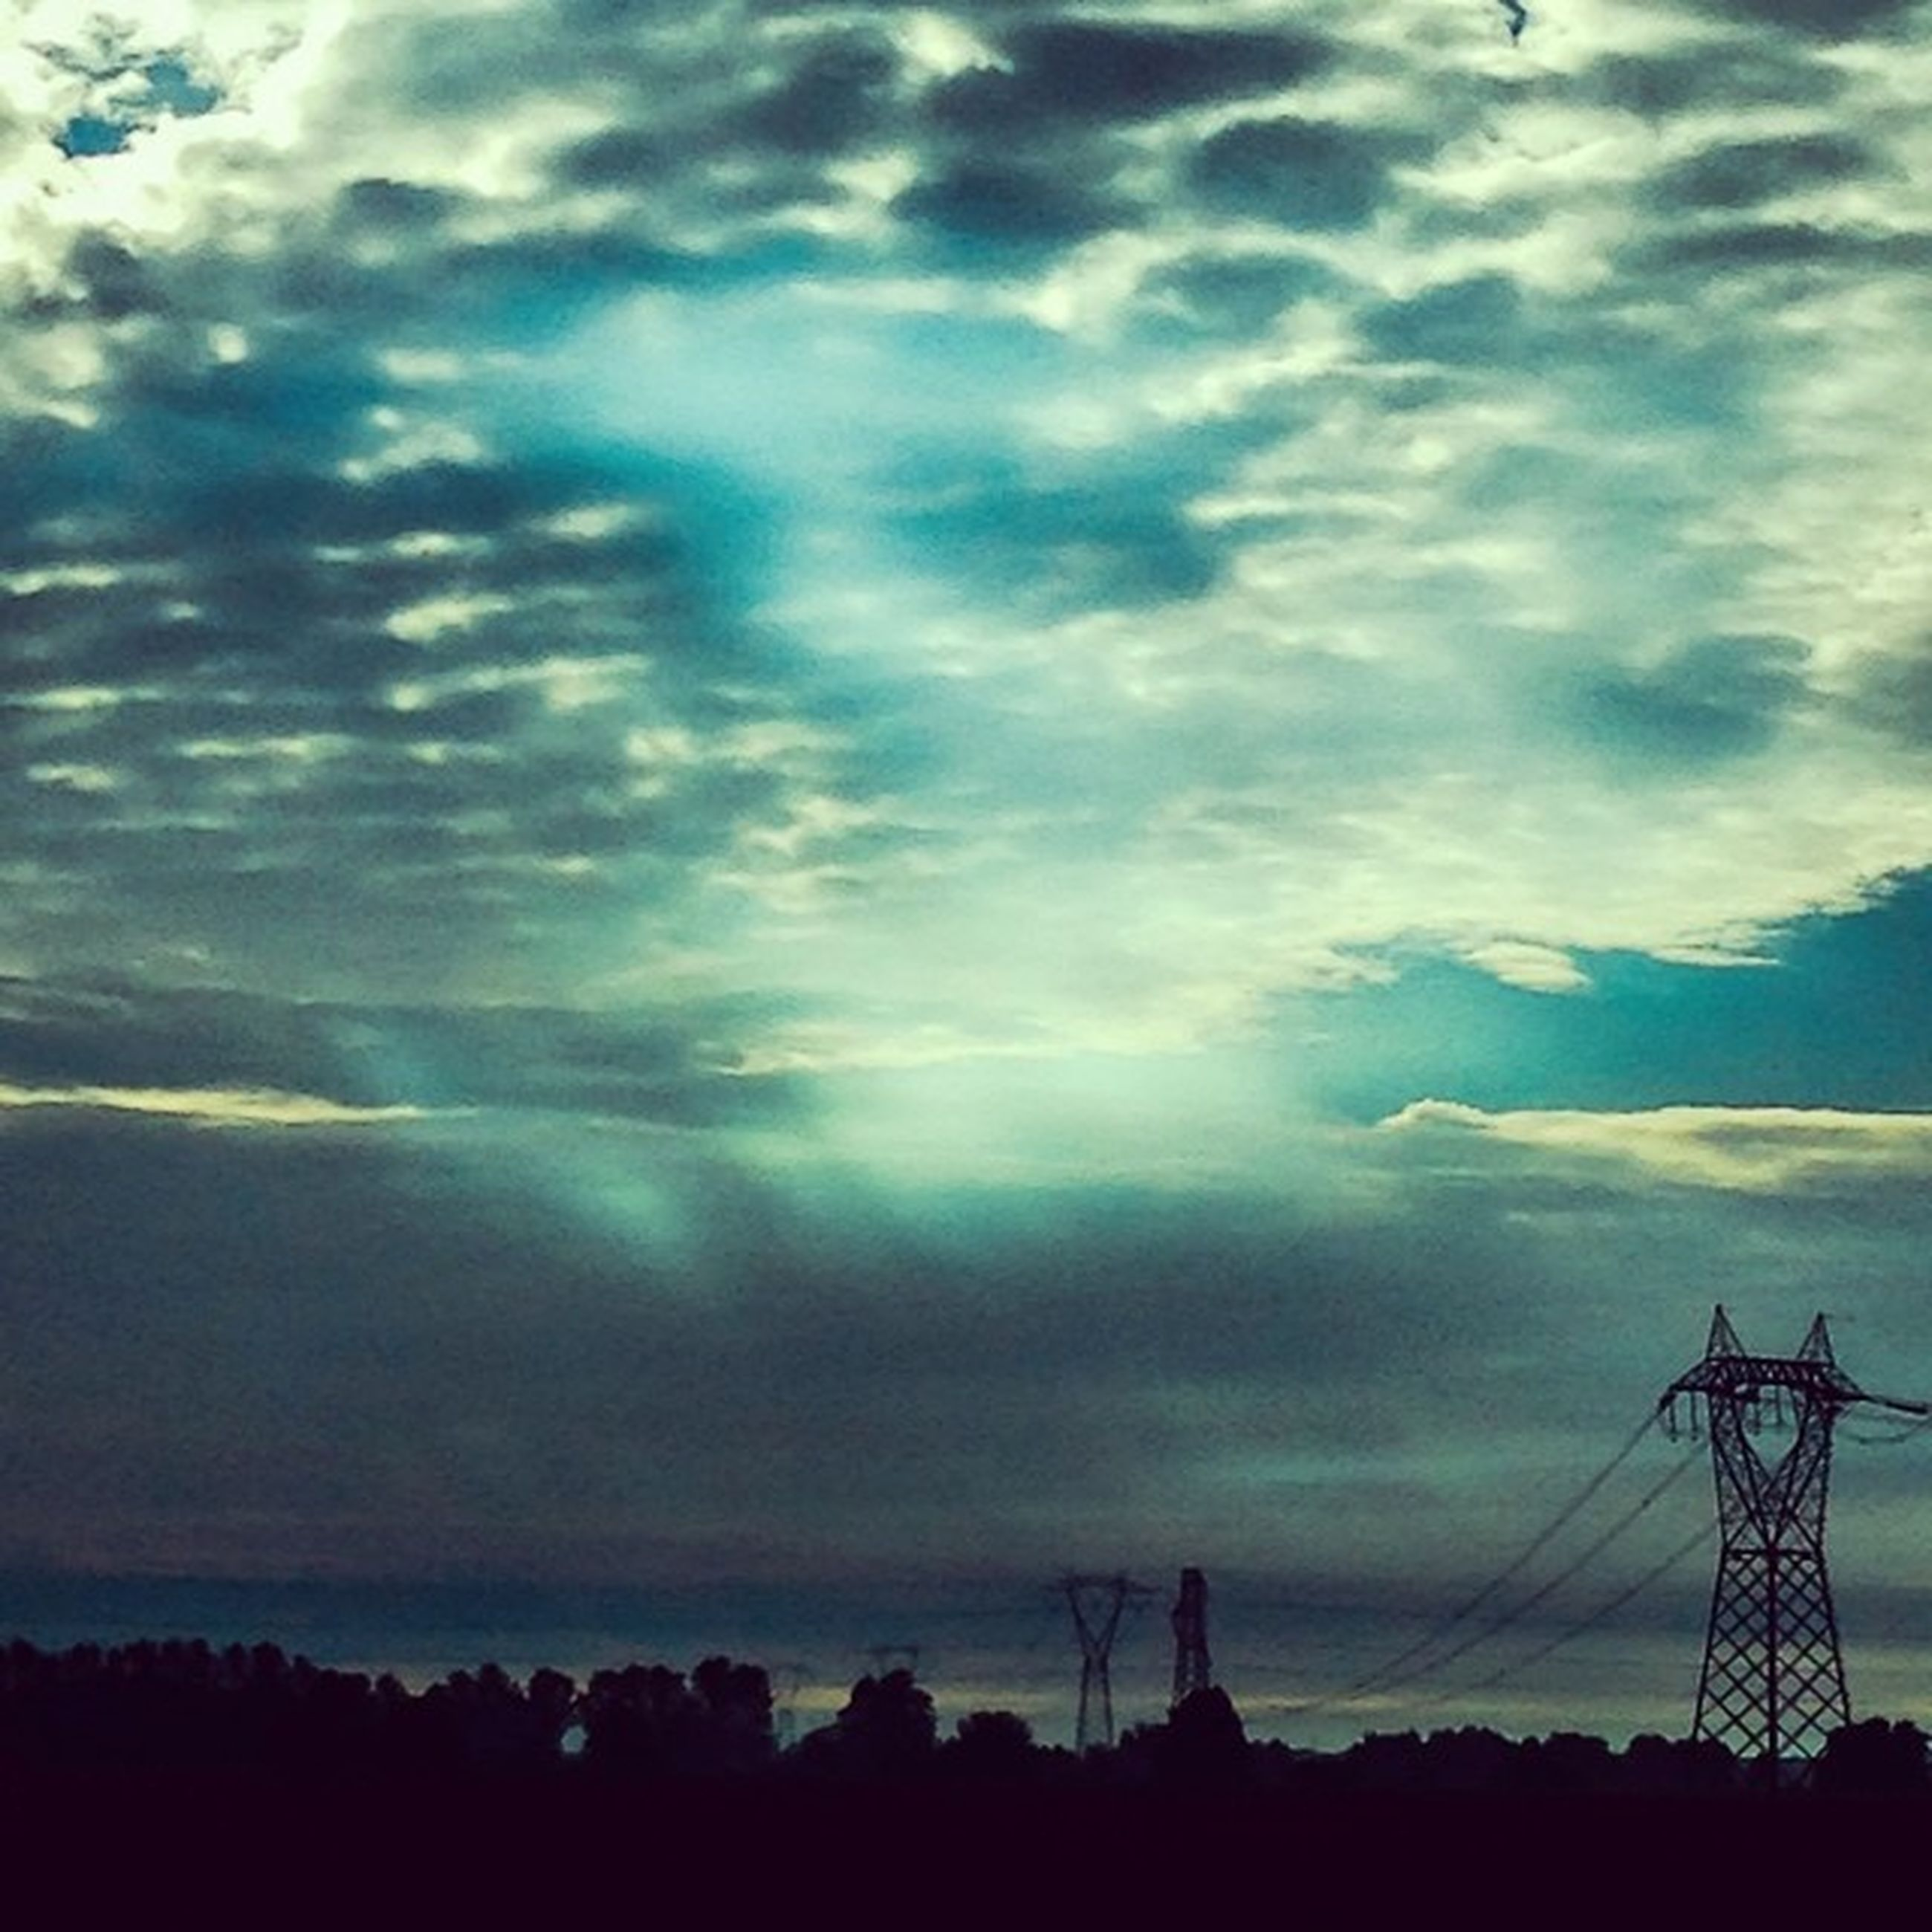 silhouette, sky, electricity pylon, power line, electricity, cloud - sky, power supply, fuel and power generation, beauty in nature, tranquility, scenics, low angle view, connection, tranquil scene, cloudy, sunset, nature, cable, technology, cloud